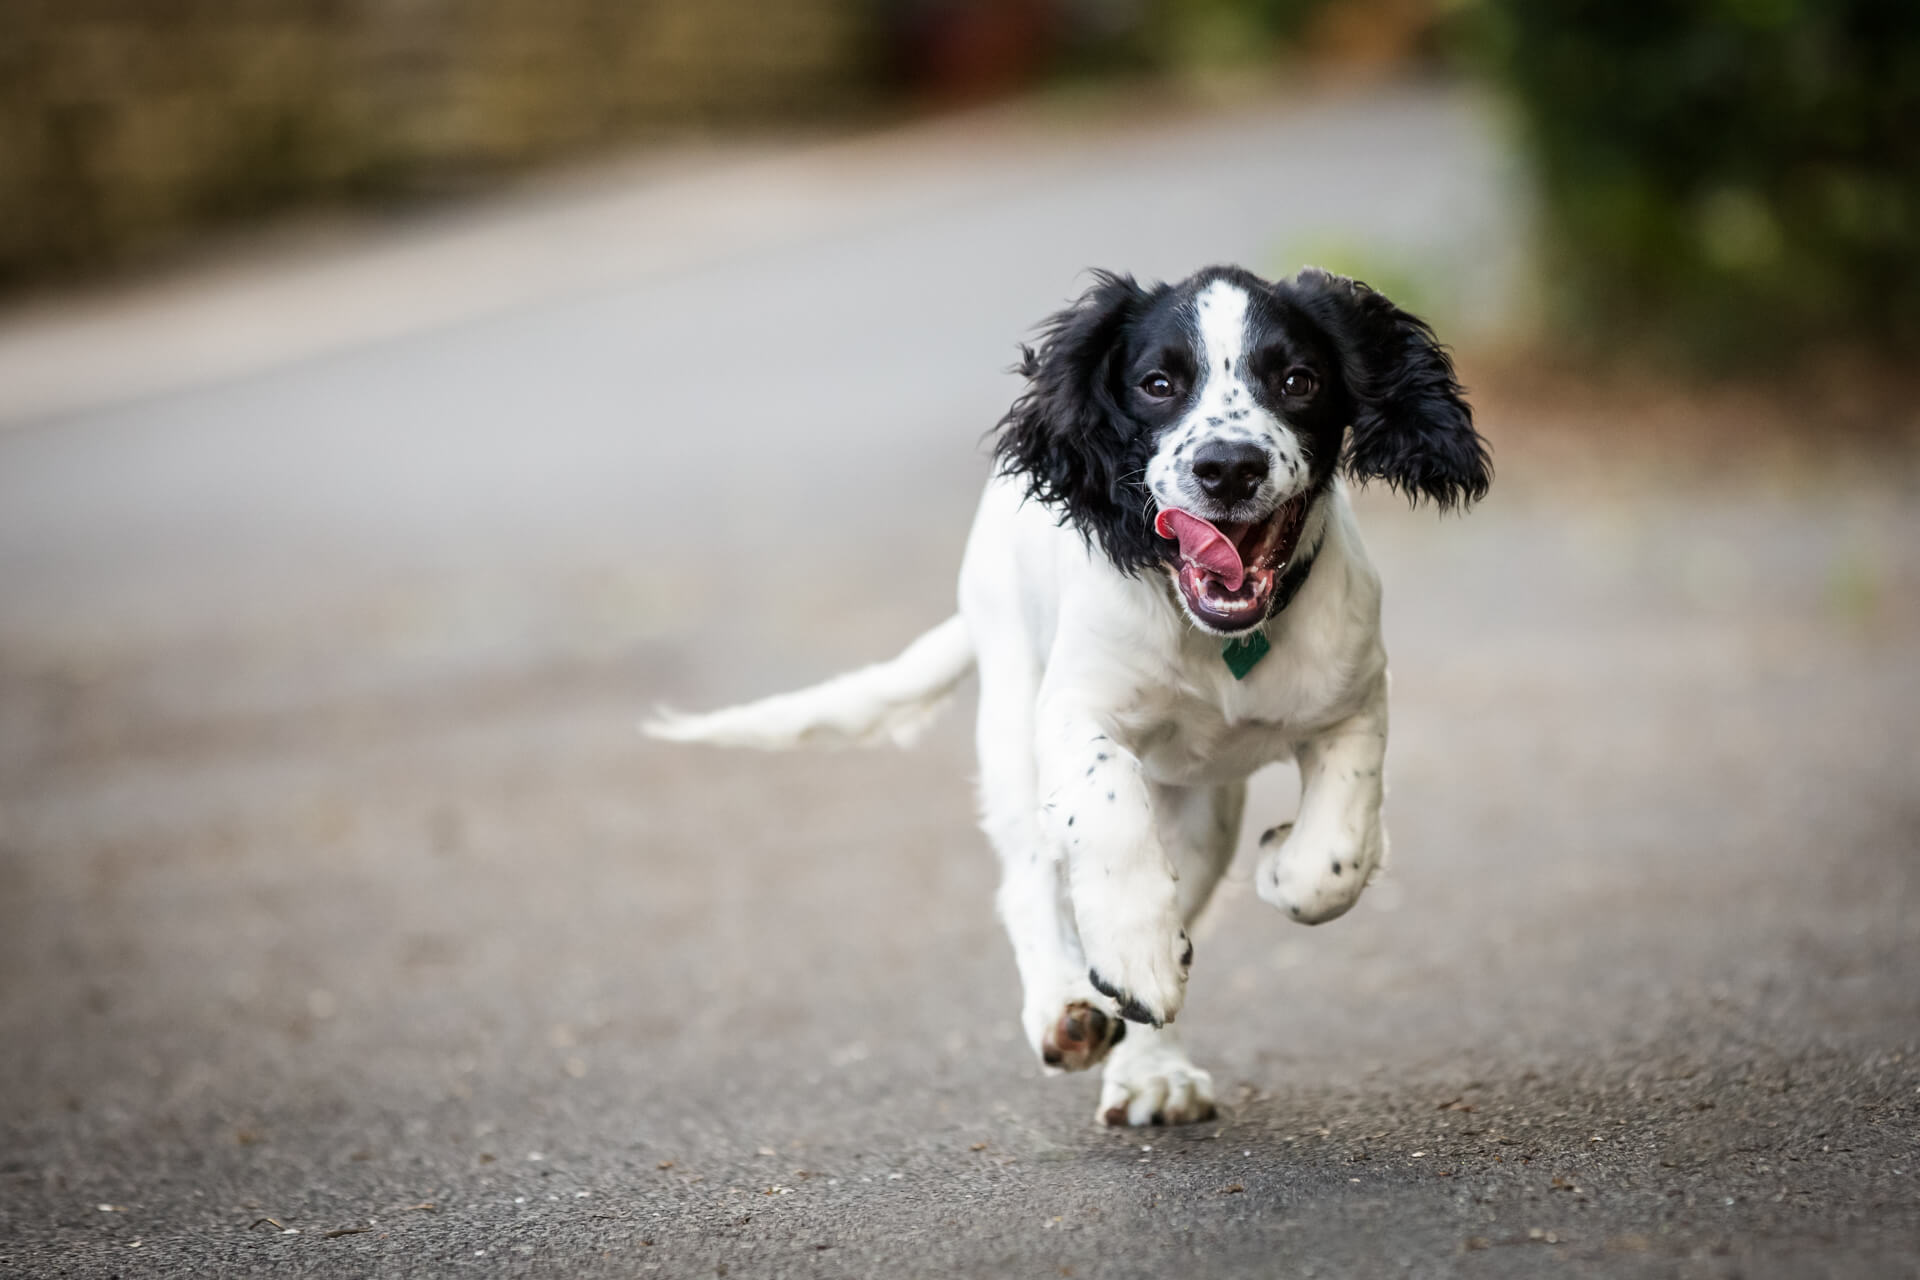 spaniel running towards the camera with his tongue hanging out